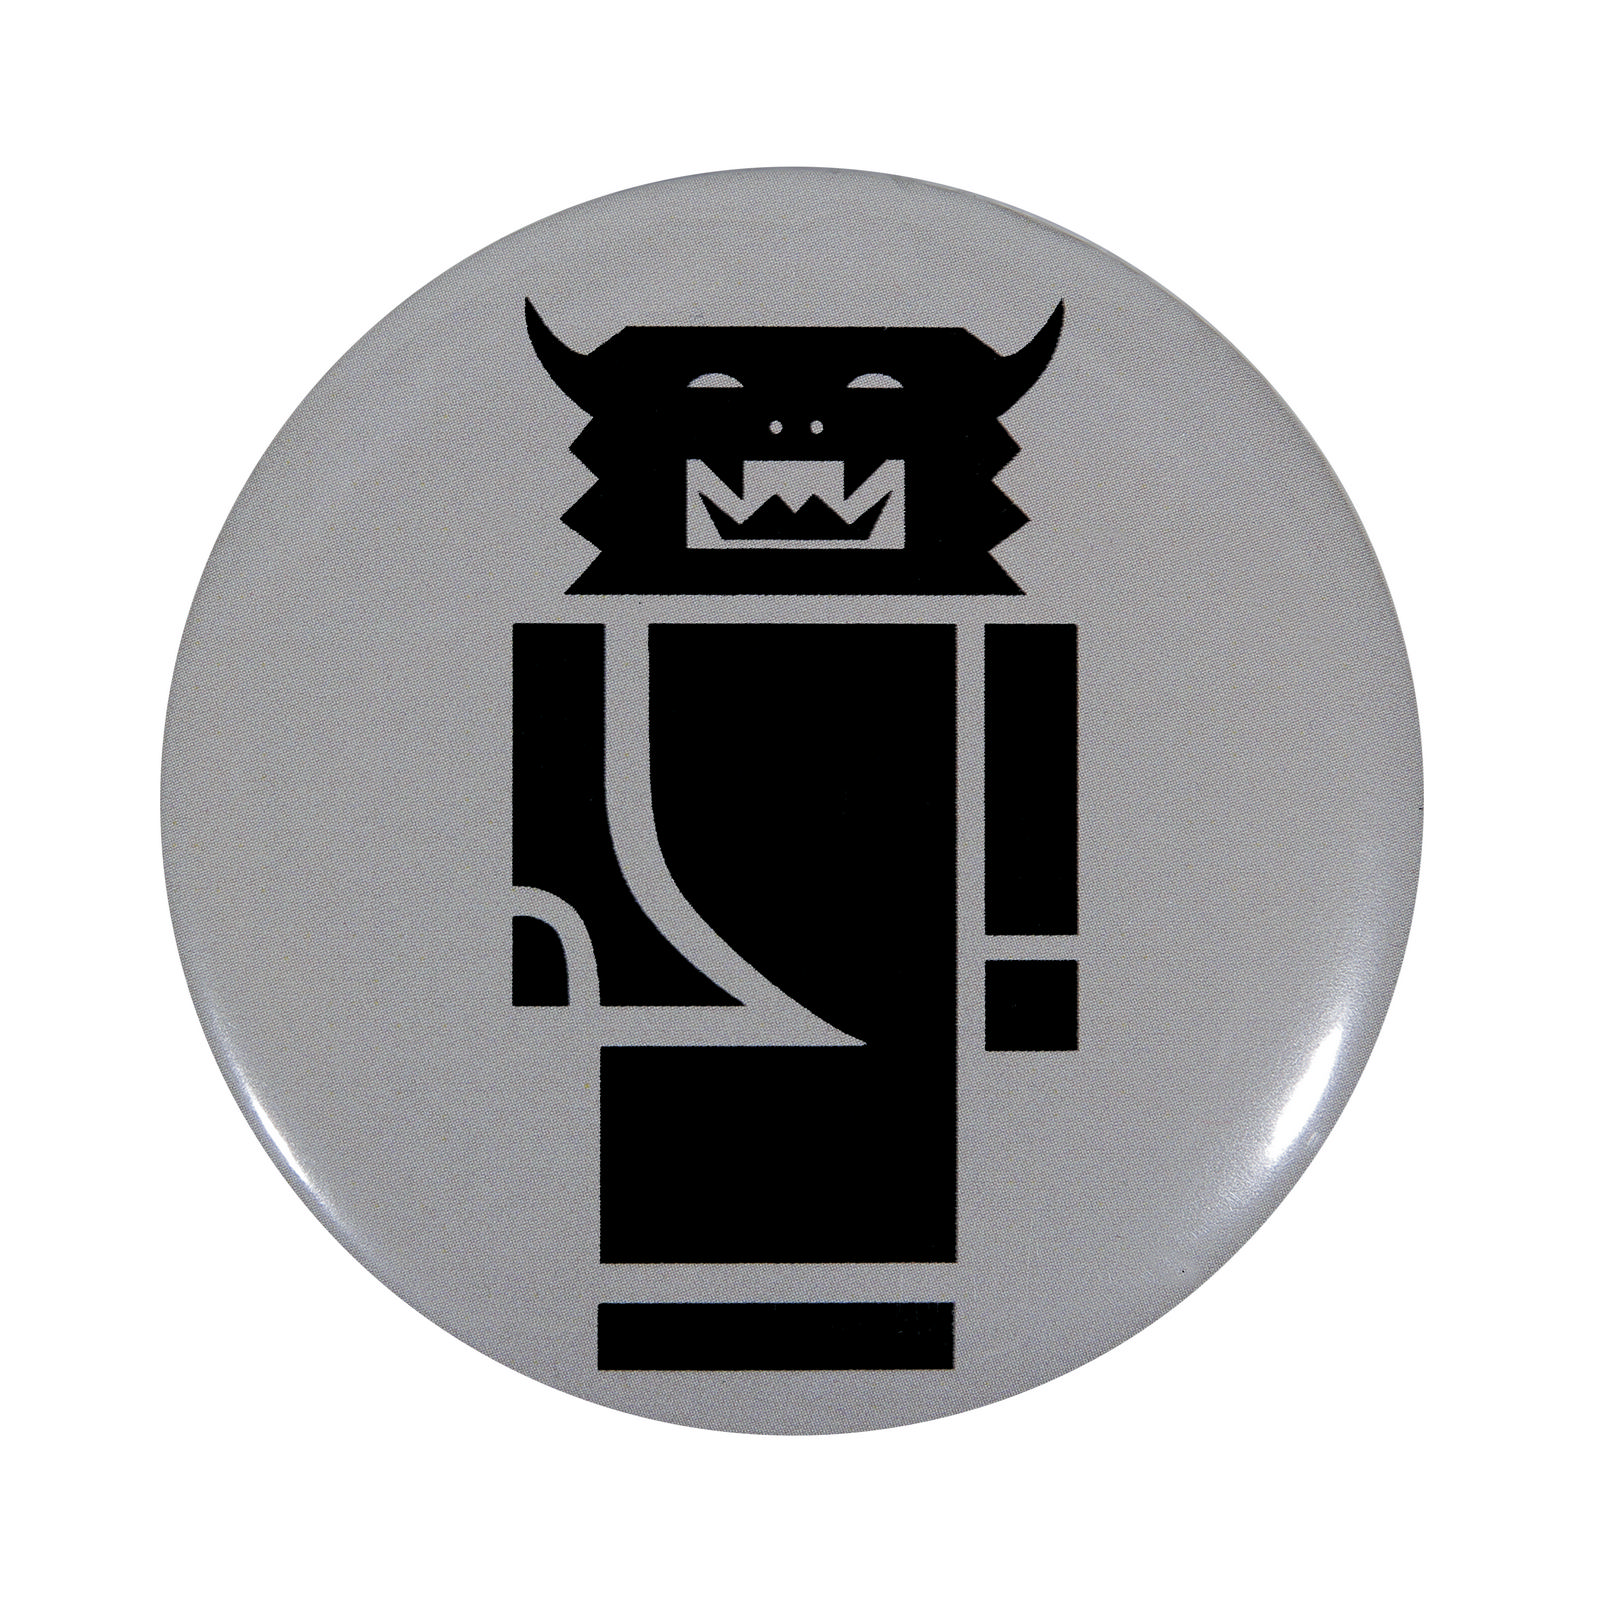 Radegast button 1